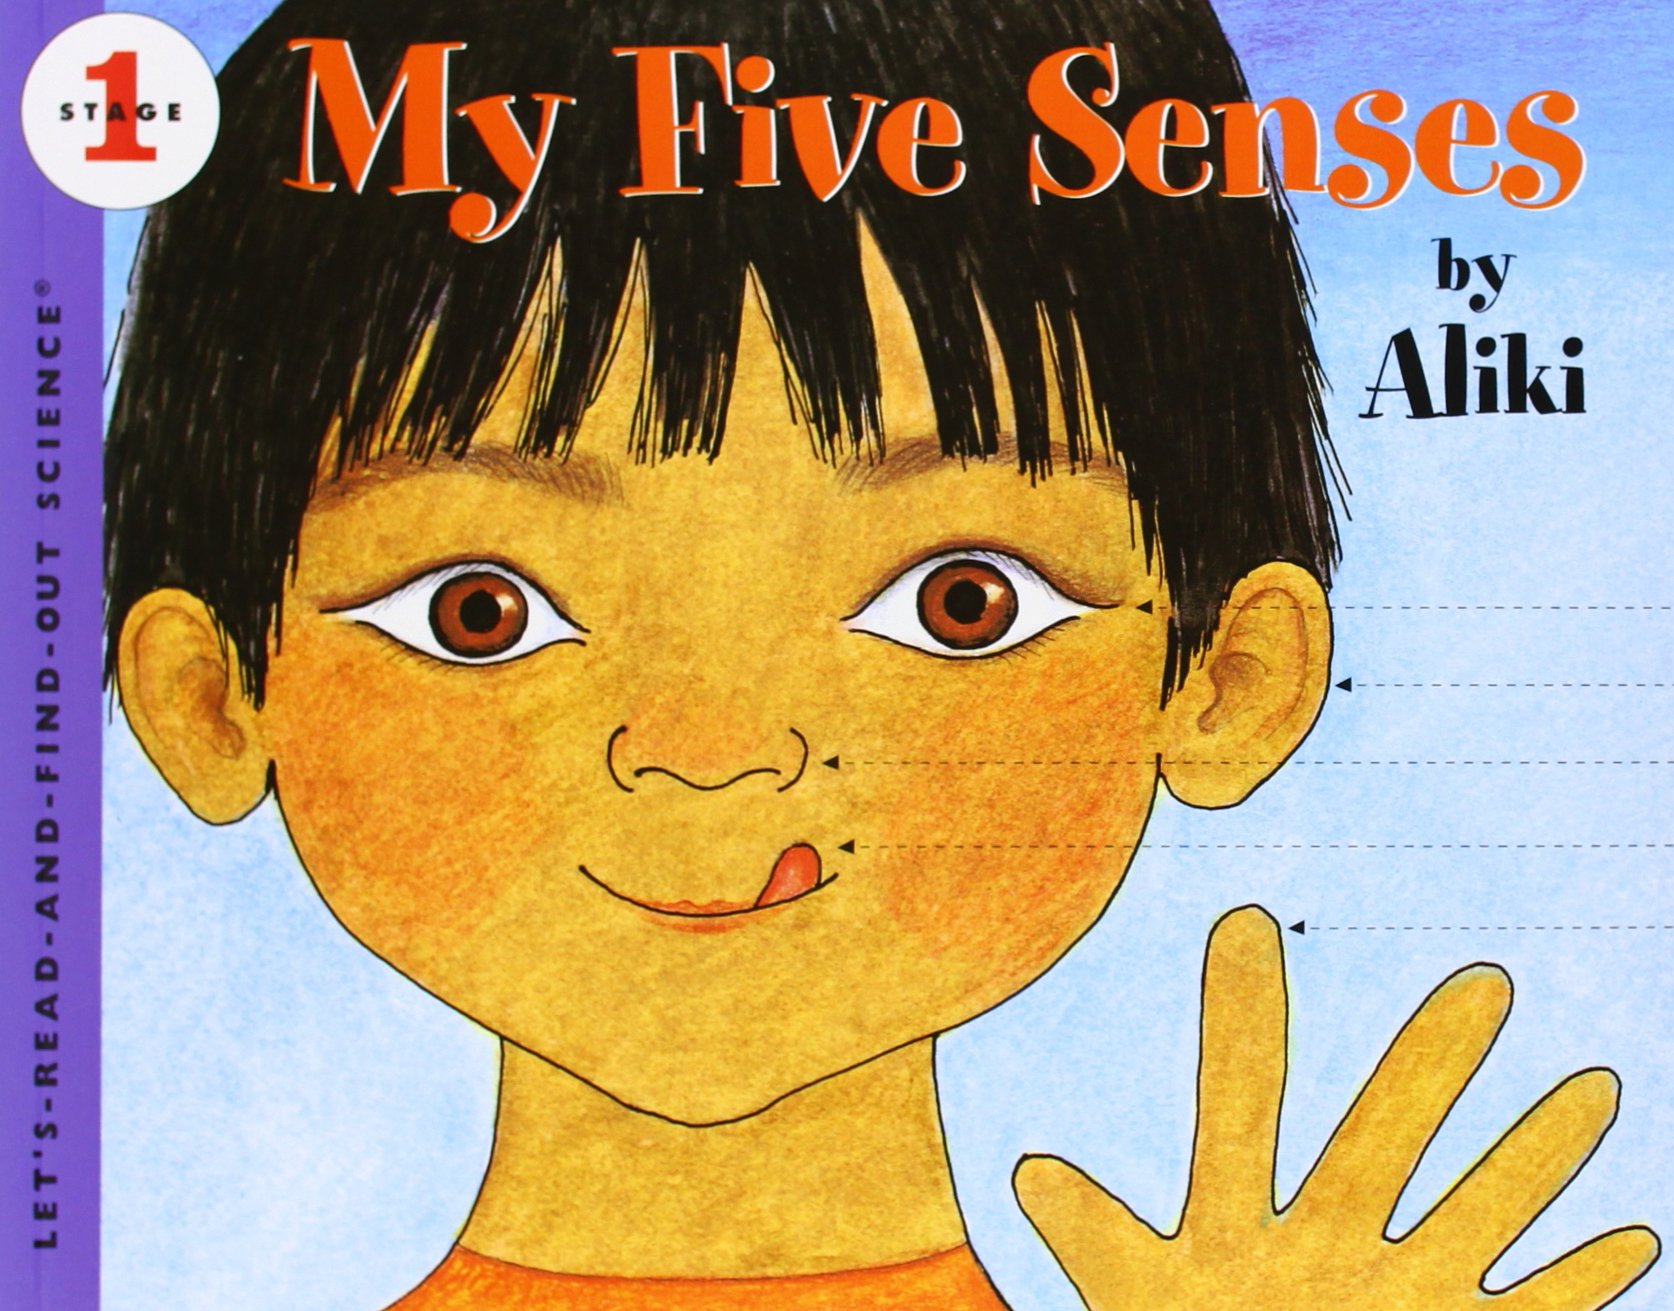 Five Sense Books For Kids